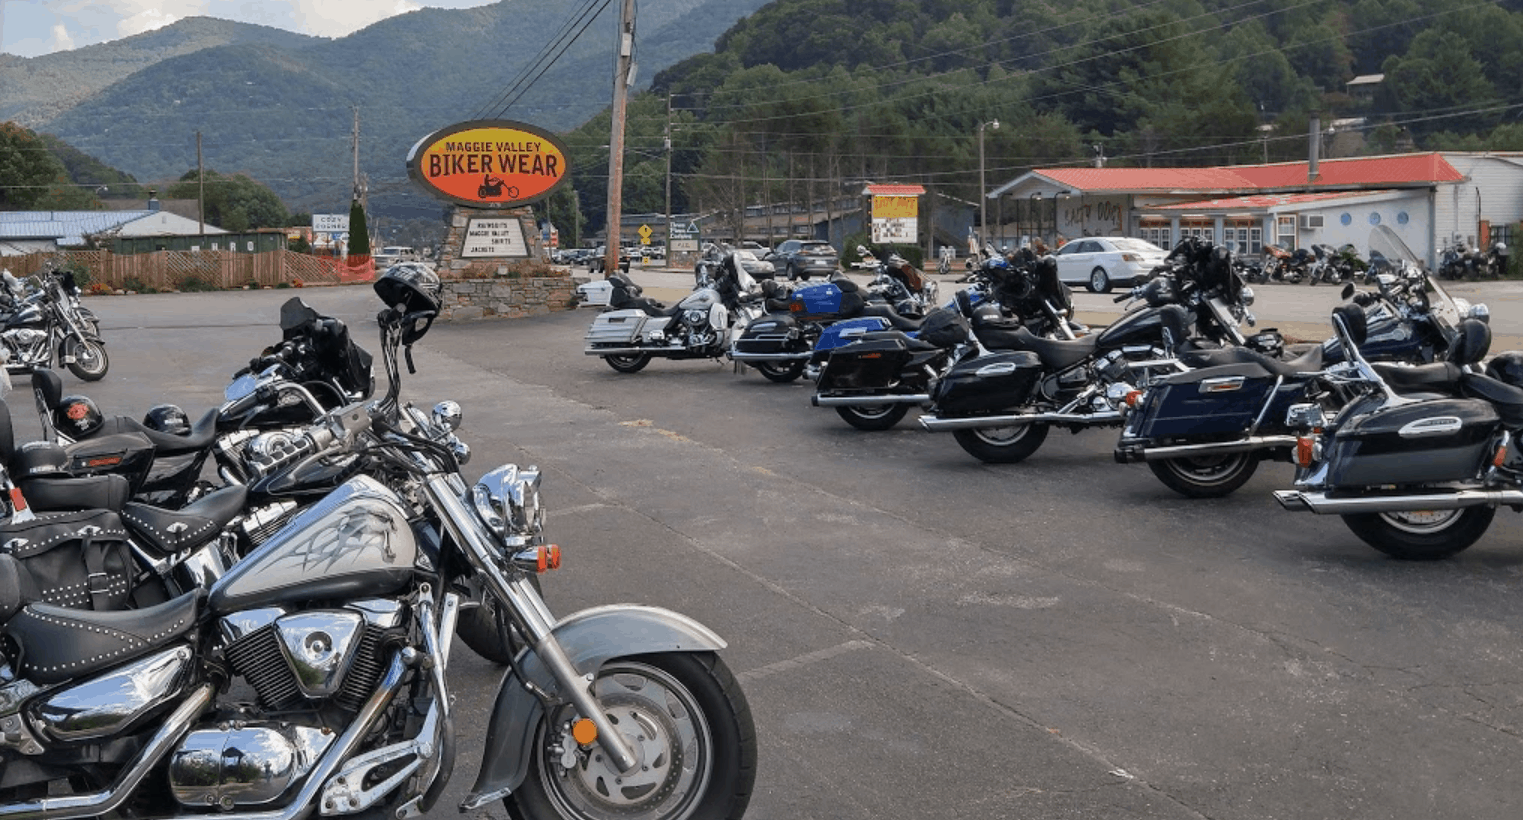 Maggie Valley Biker Wear